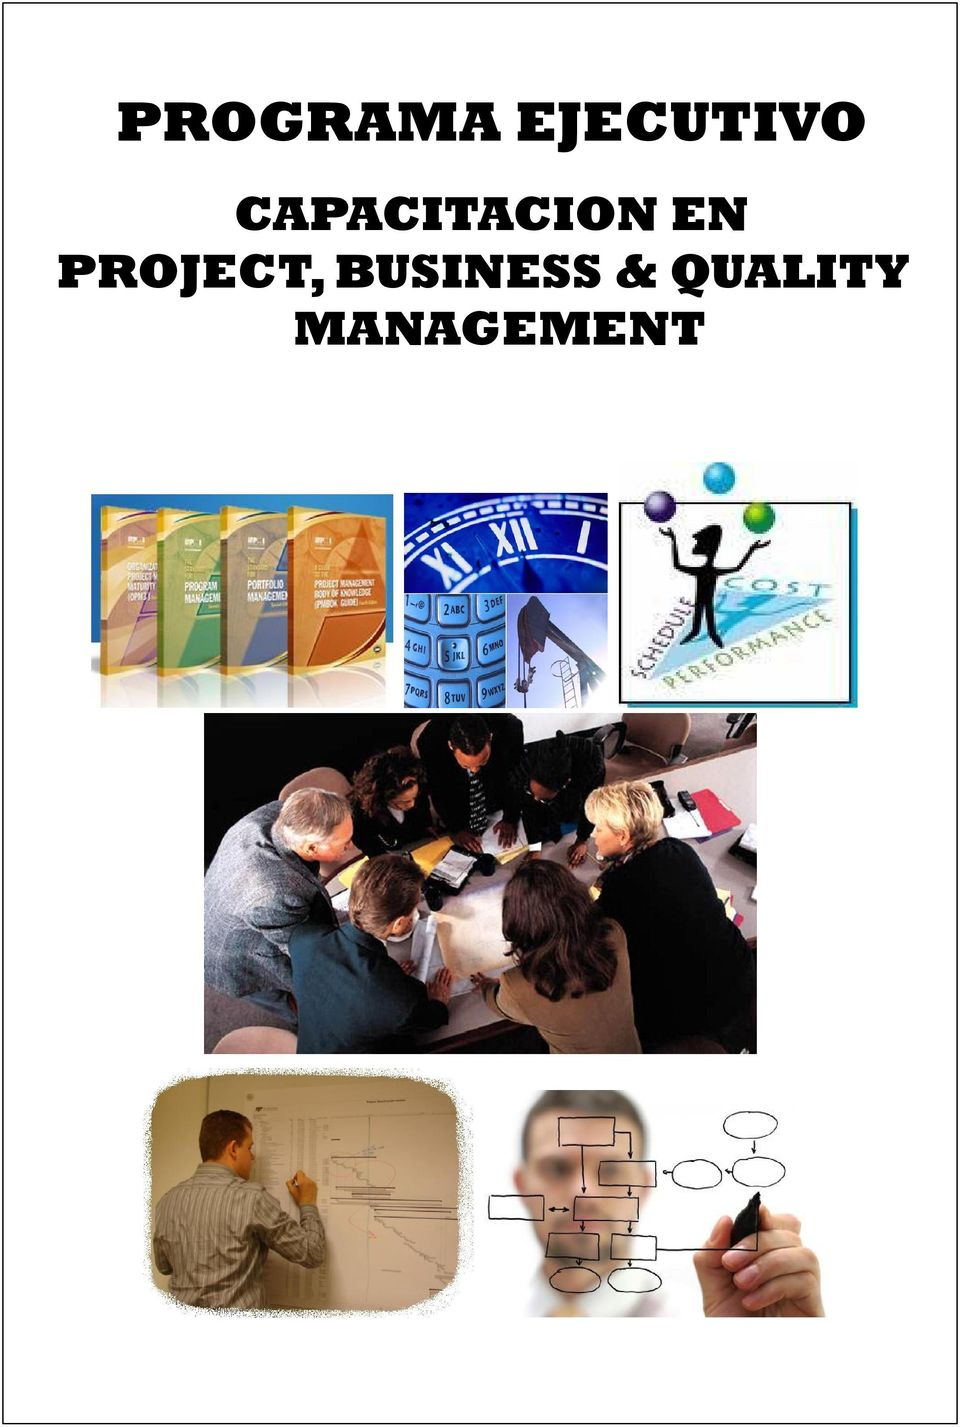 PROJECT, BUSINESS